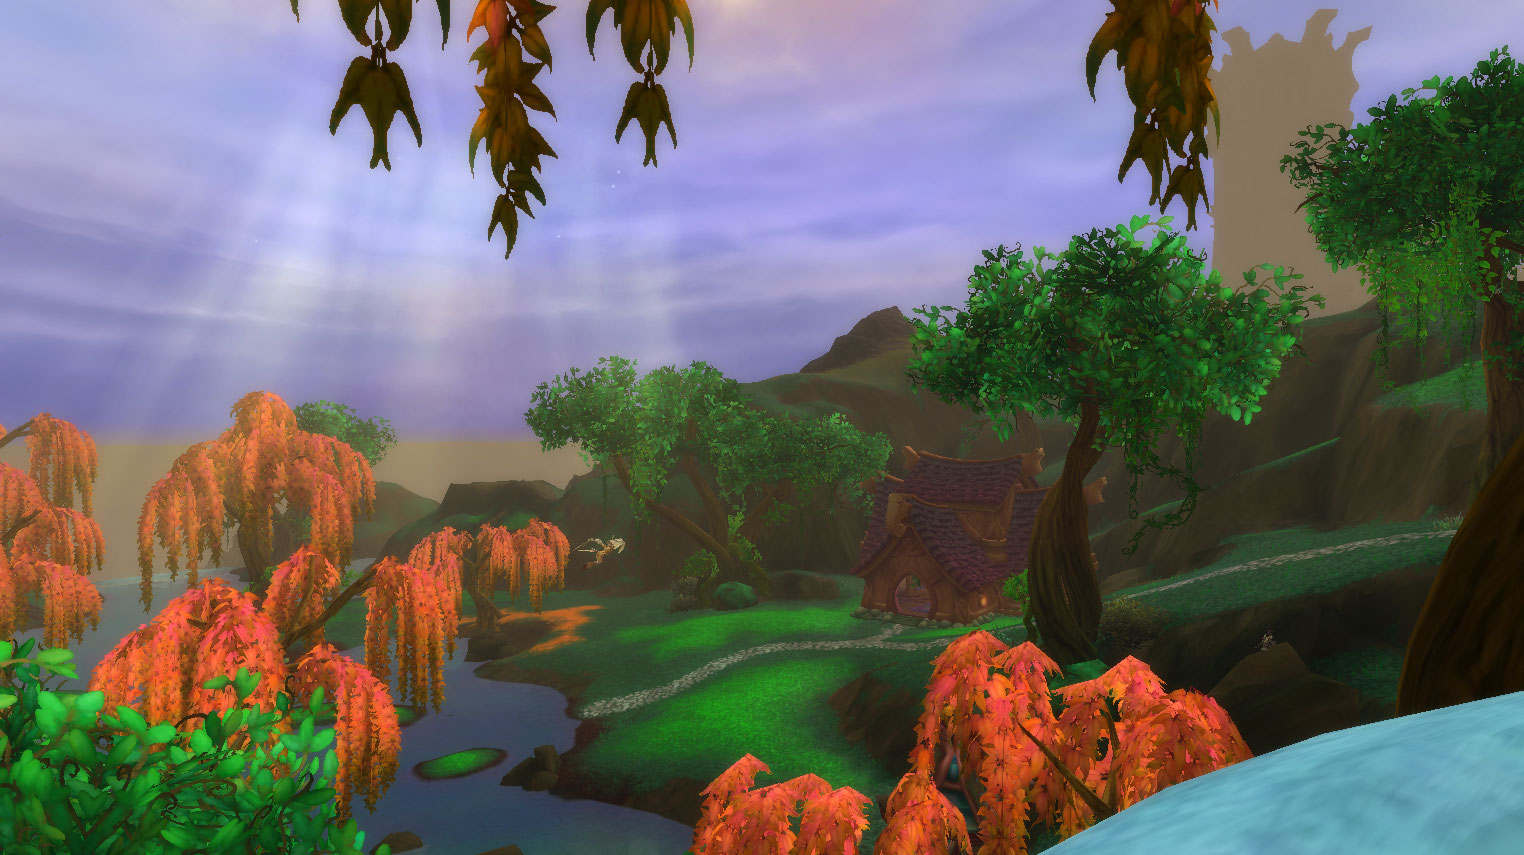 Screenshot from World of Warcraft Legion showing a photo of scenery.